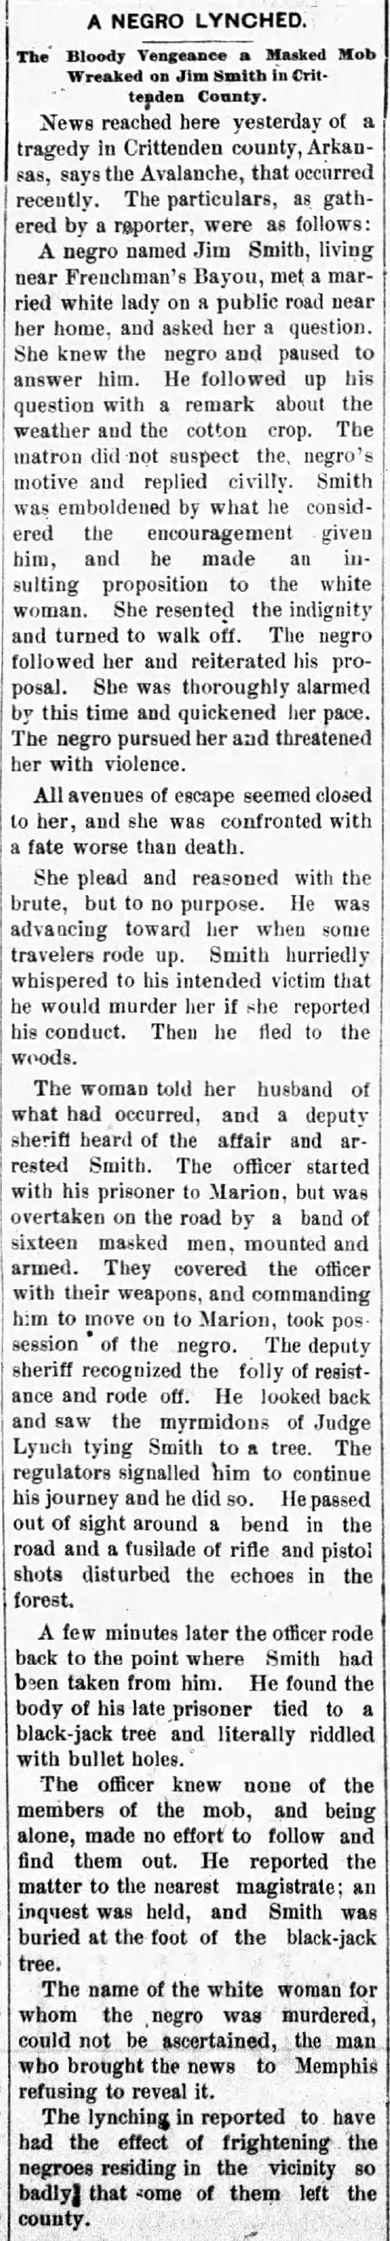 Jim Smith Lynching Article